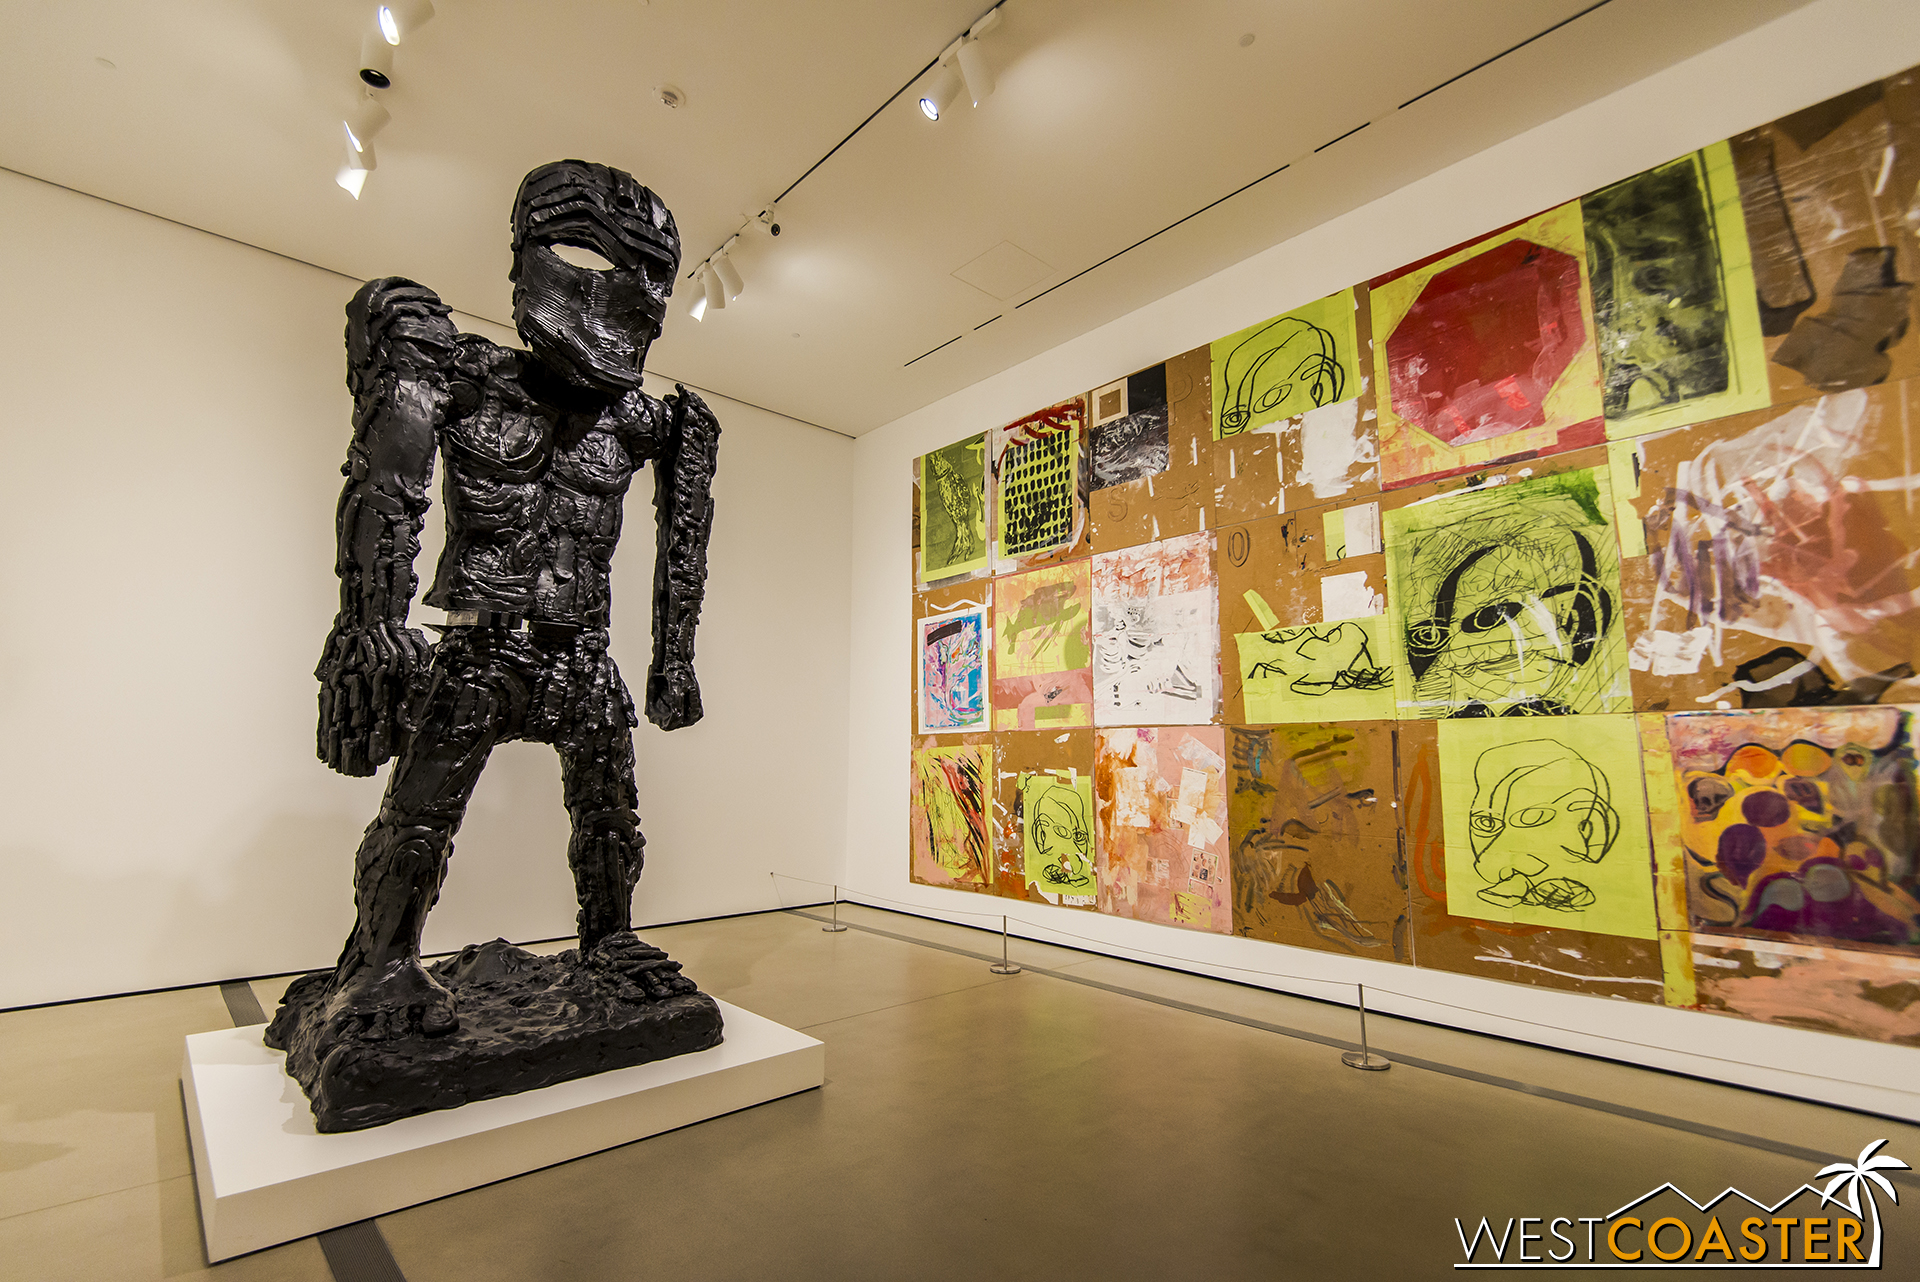 Thomas Houseago's  Giant Figure (Cyclops)  is one of the pieces on display in the current collection installation.